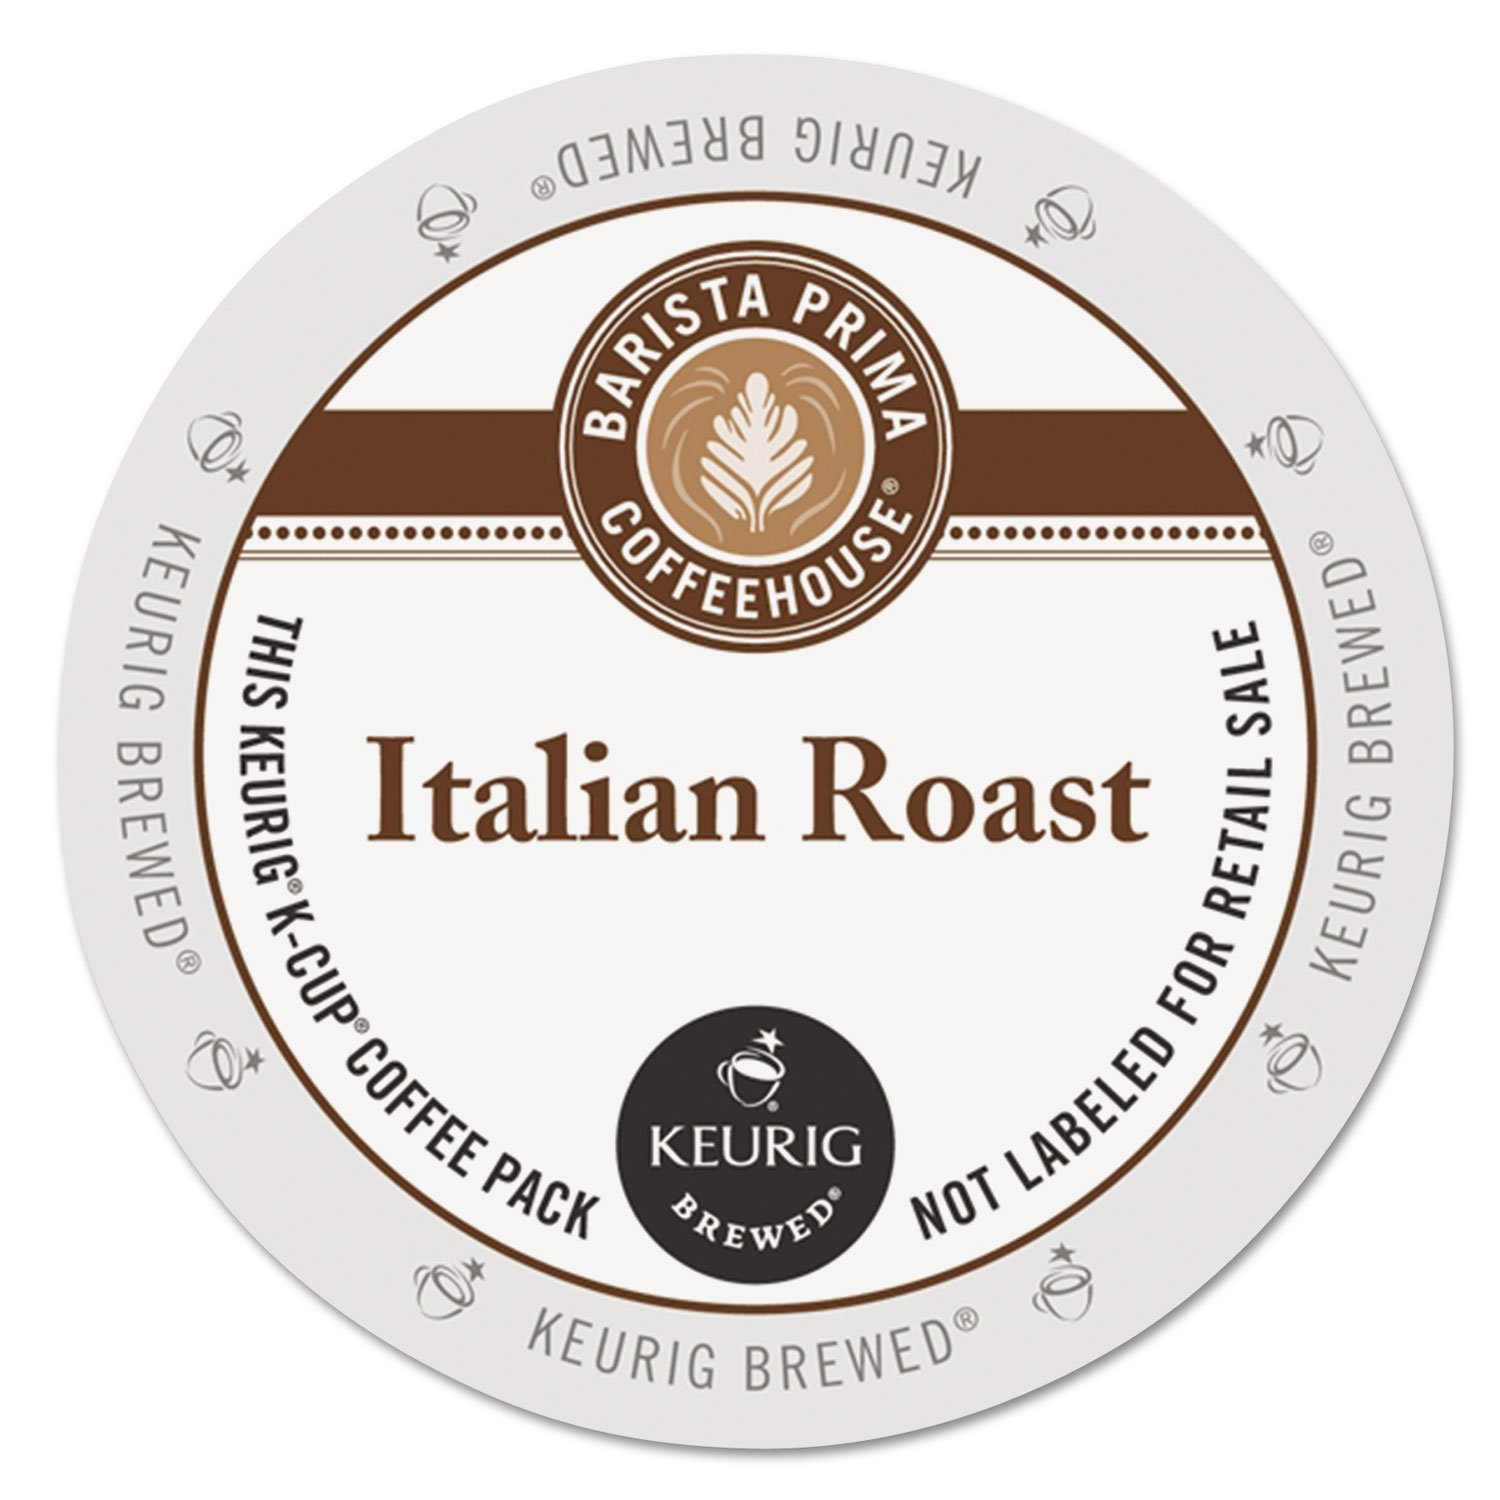 Barista Prima Coffeehouse Italian Roast Coffee K-Cup for Keurig Brewers, Italian Roast Coffee (Count of 96) - Packaging May Vary by Barista Prima